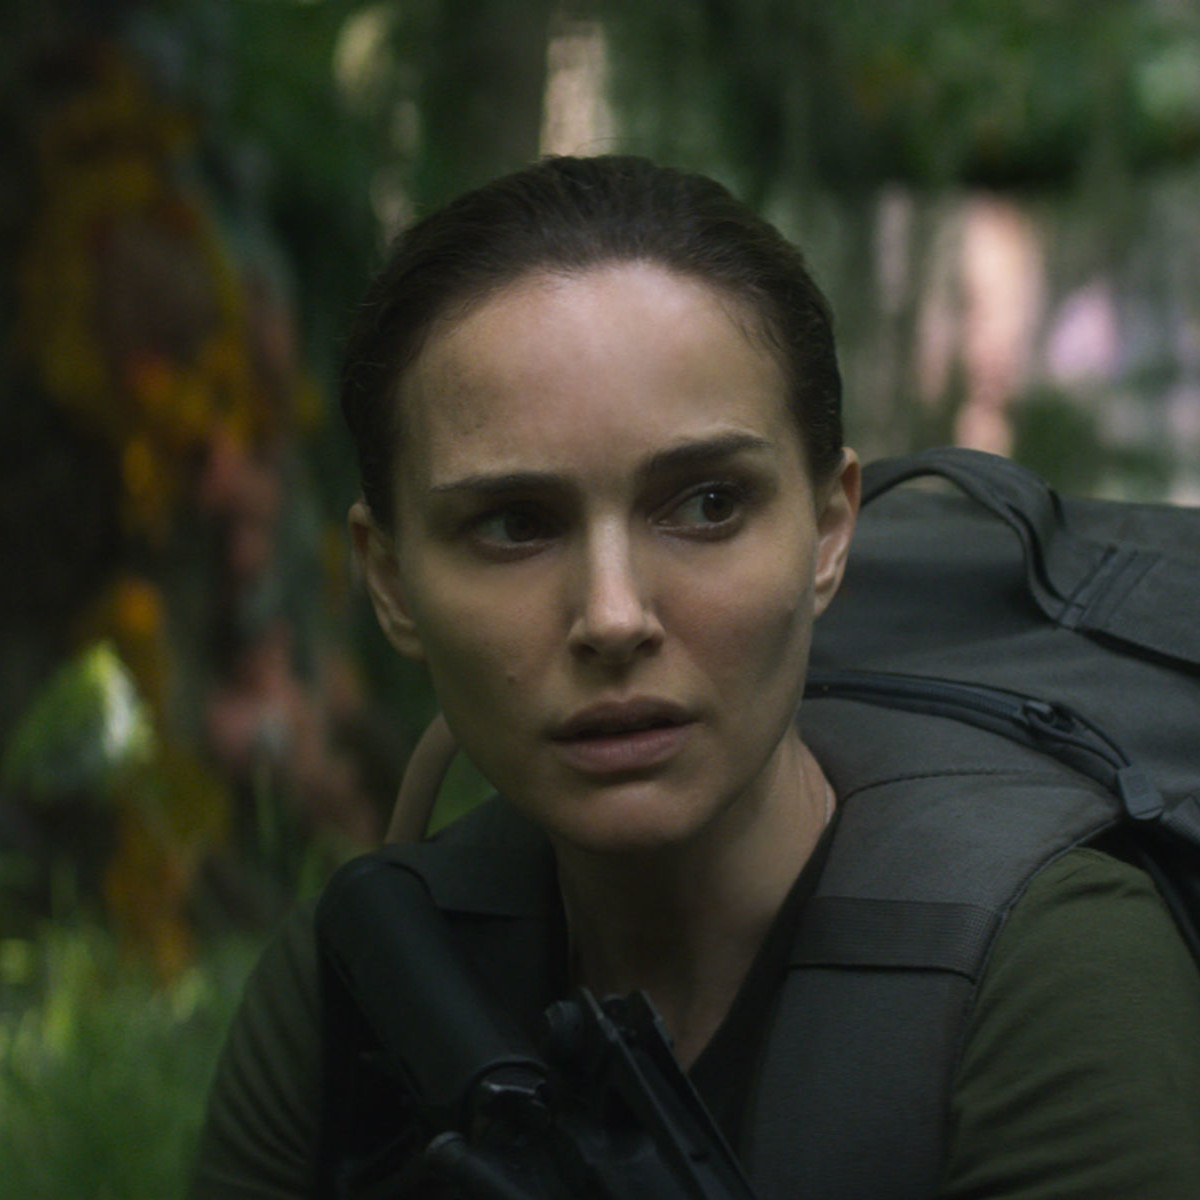 Natalie Portman in Annihilation